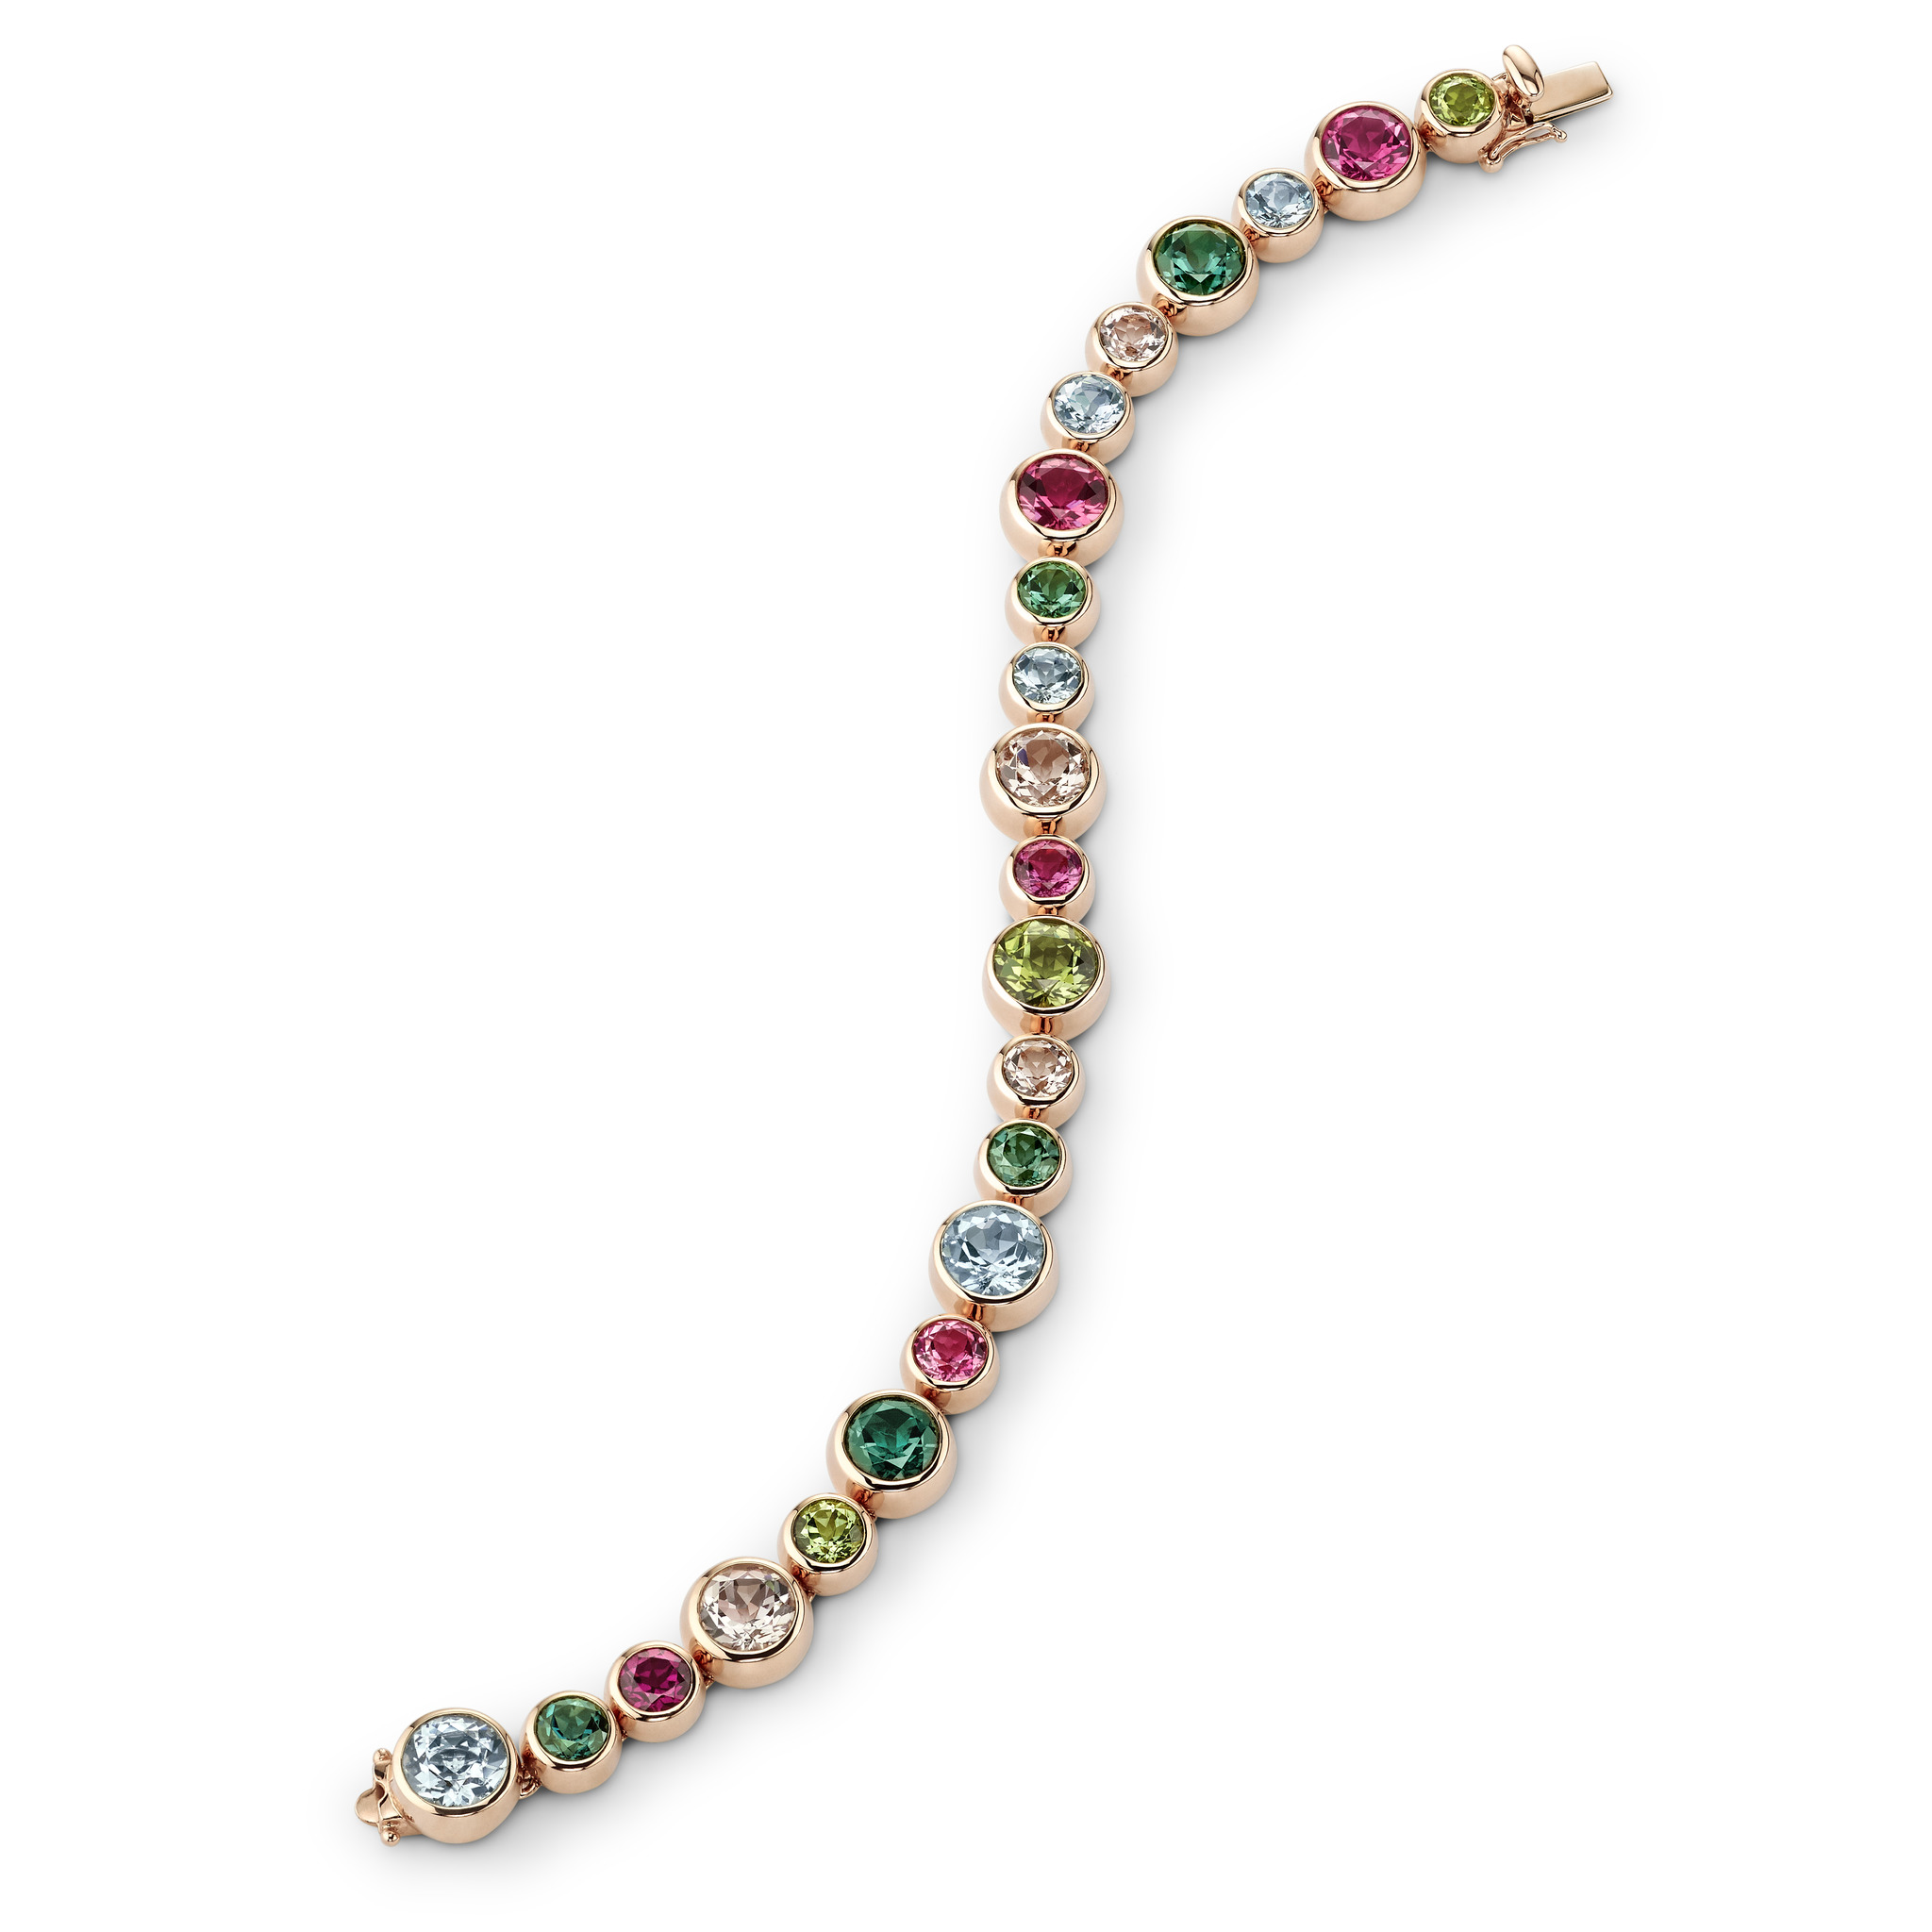 Bracelet with coloured gemstones